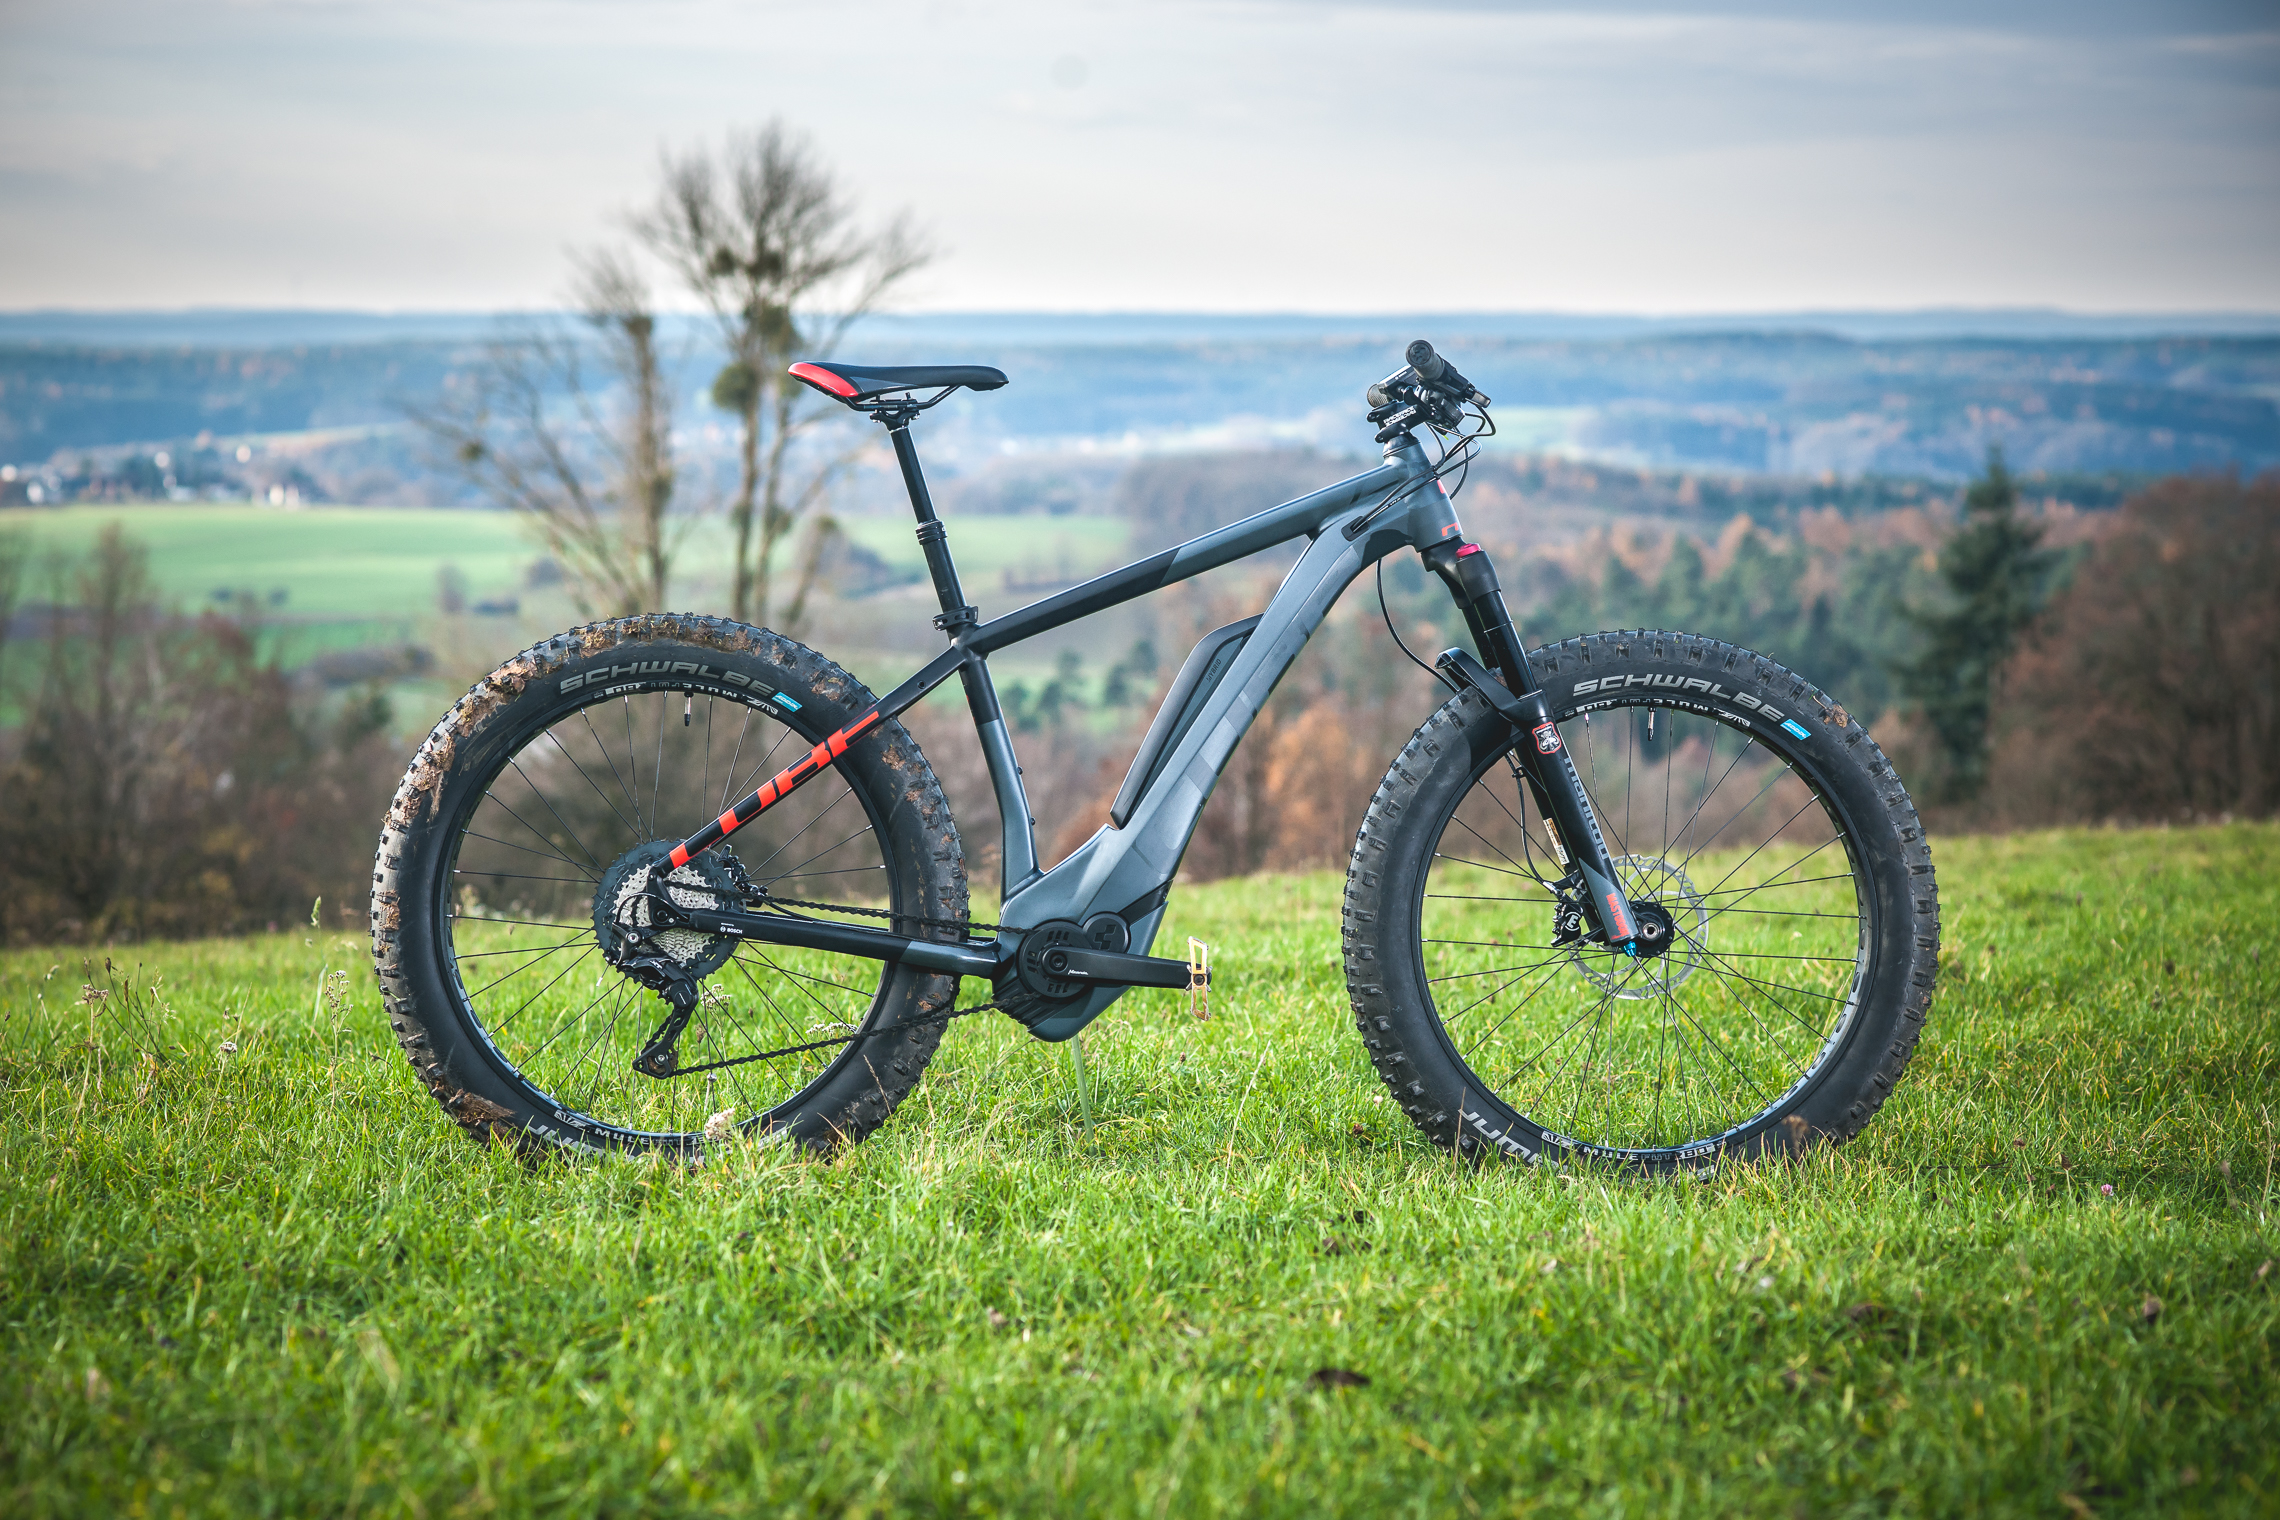 was f r ein fettes ding test cube nutrail hybrid 500 e fatbike emtb. Black Bedroom Furniture Sets. Home Design Ideas